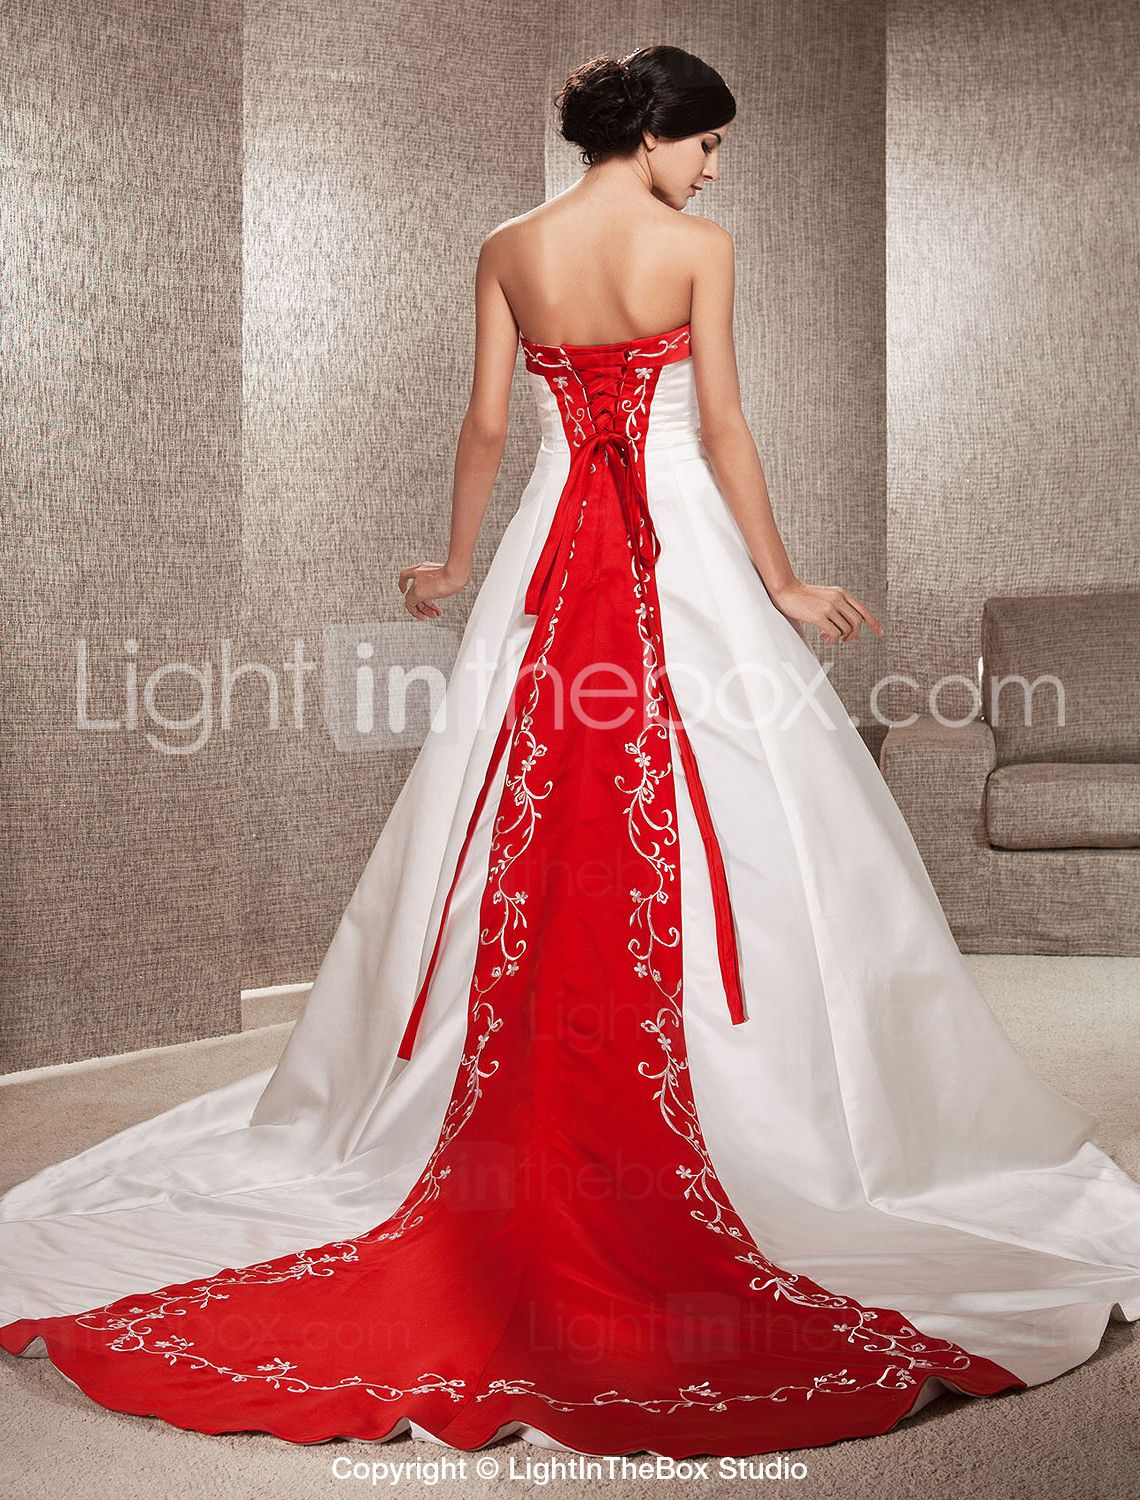 Stunning Satin Wedding Dress A Line With Chapel Train Red Panel In